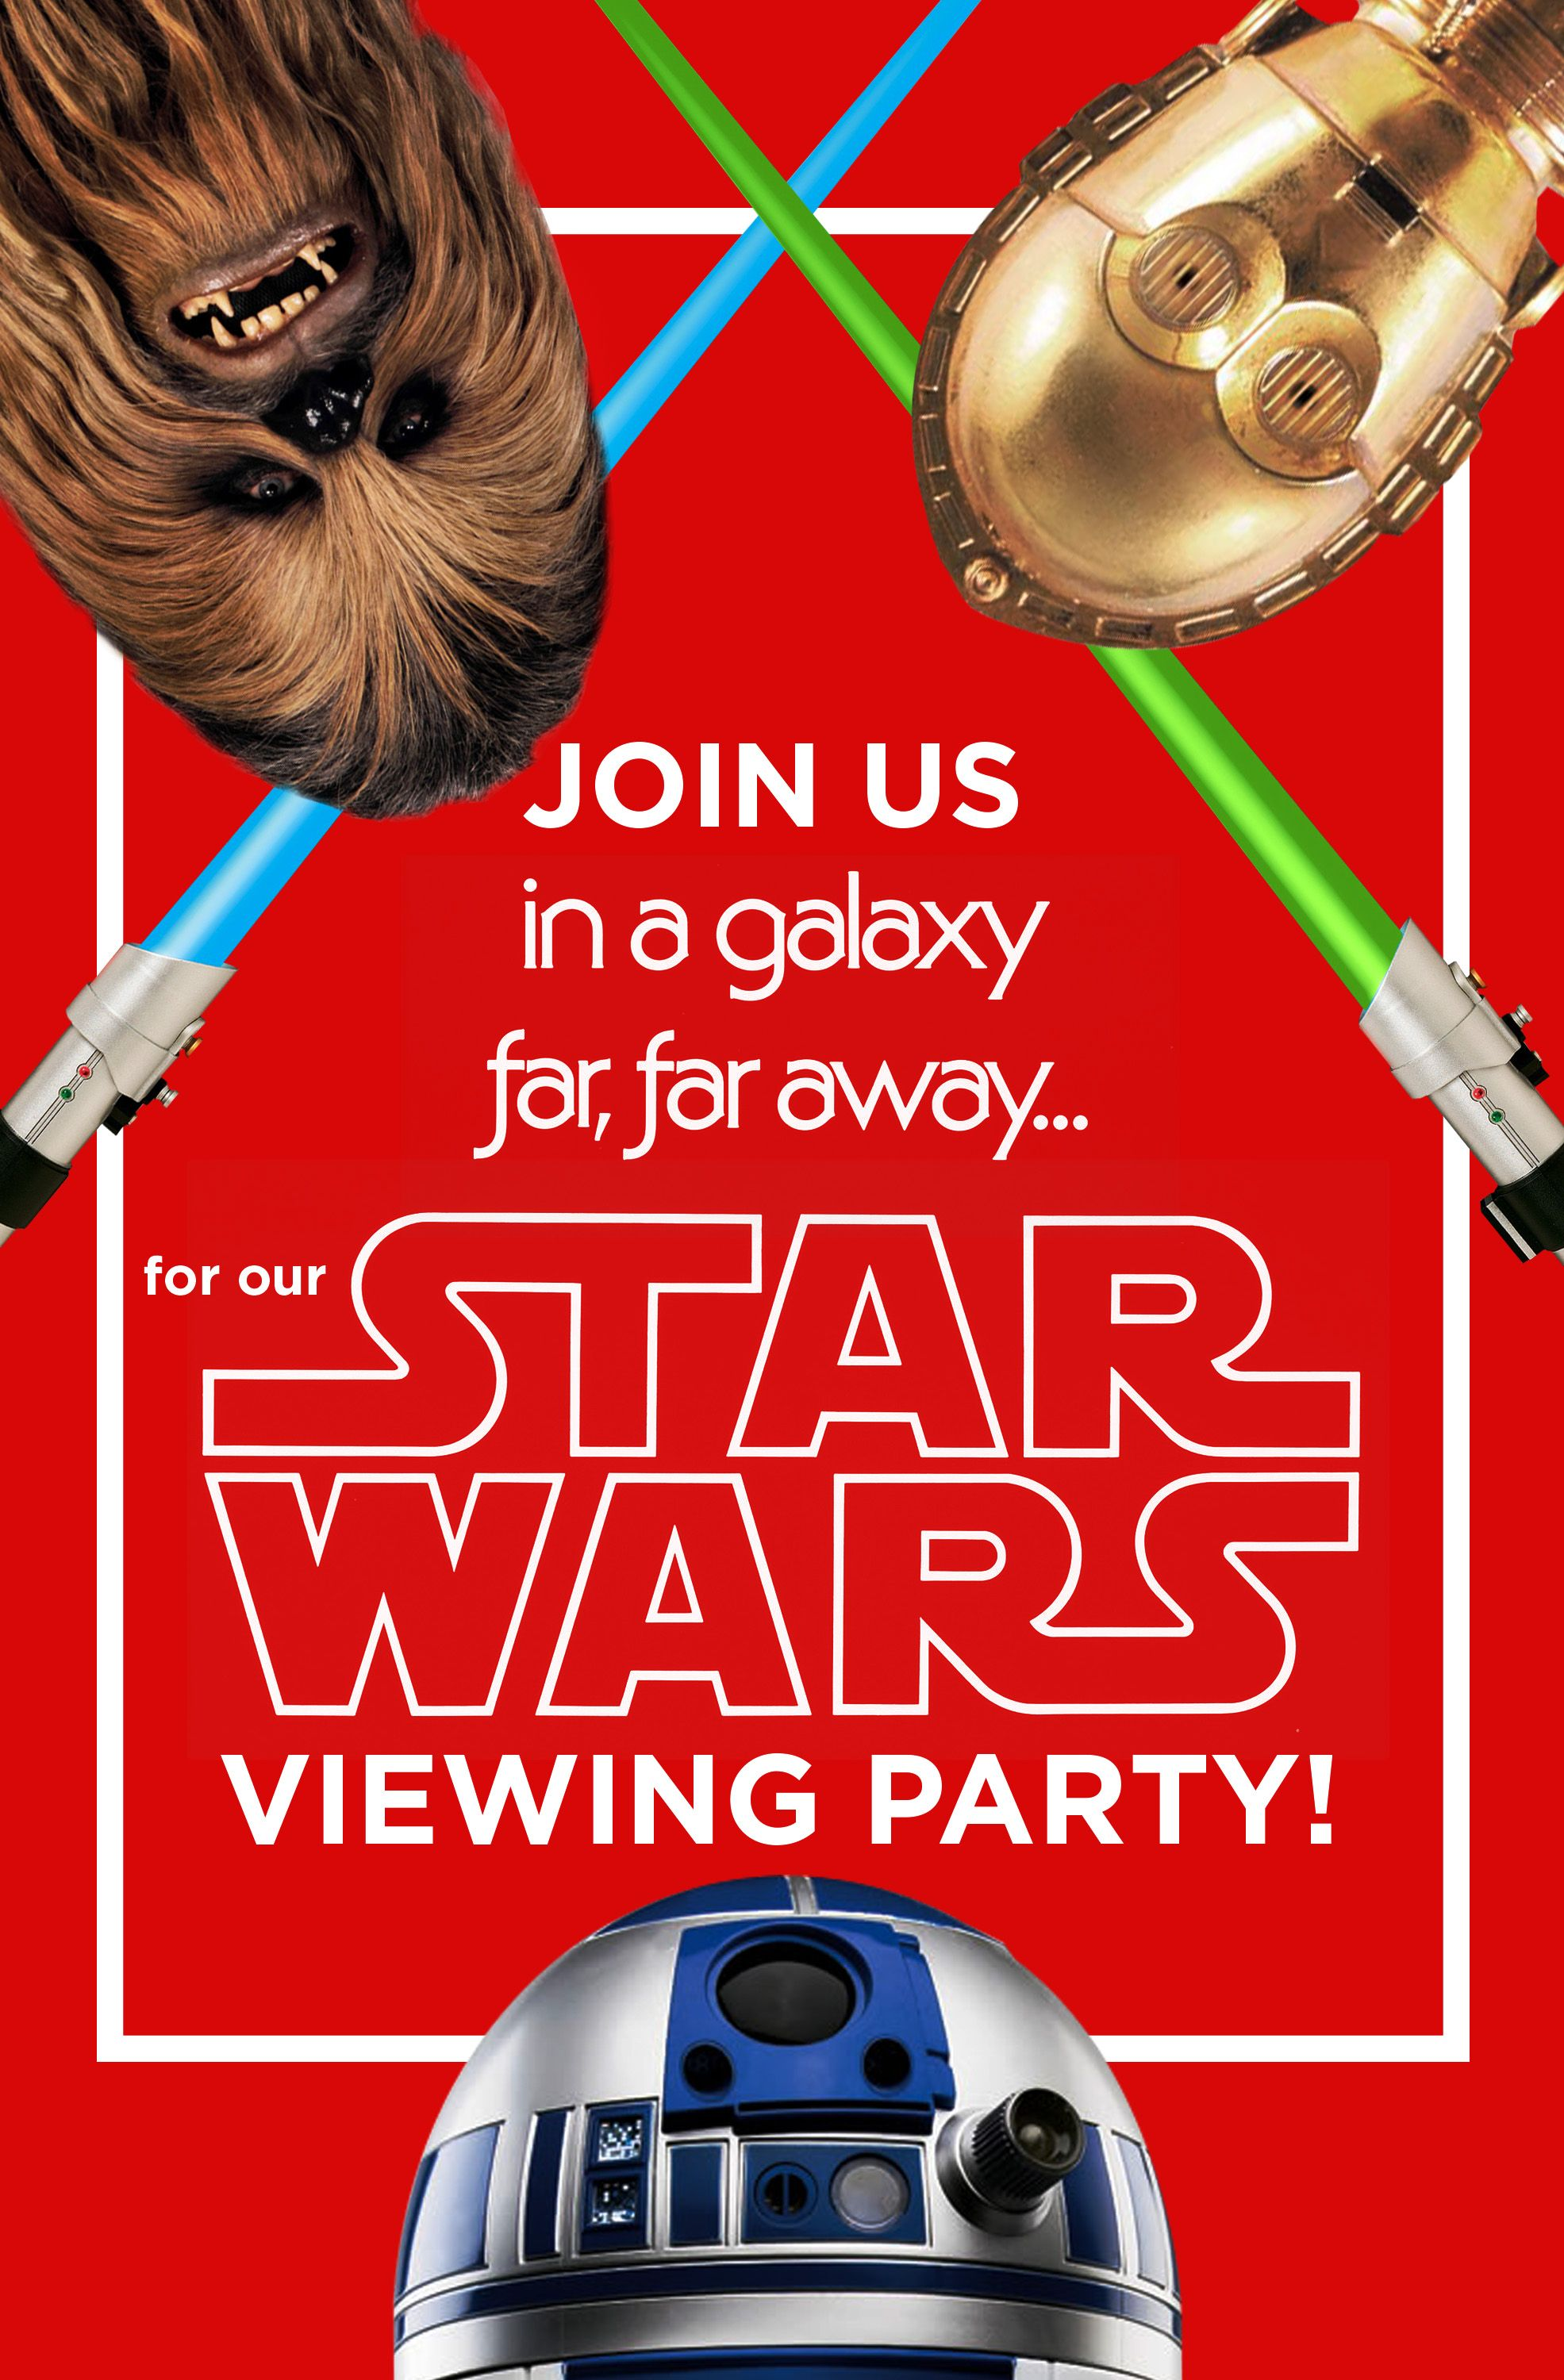 Top 5 Ideas for a Star Wars Viewing Party | HelloSociety Blog